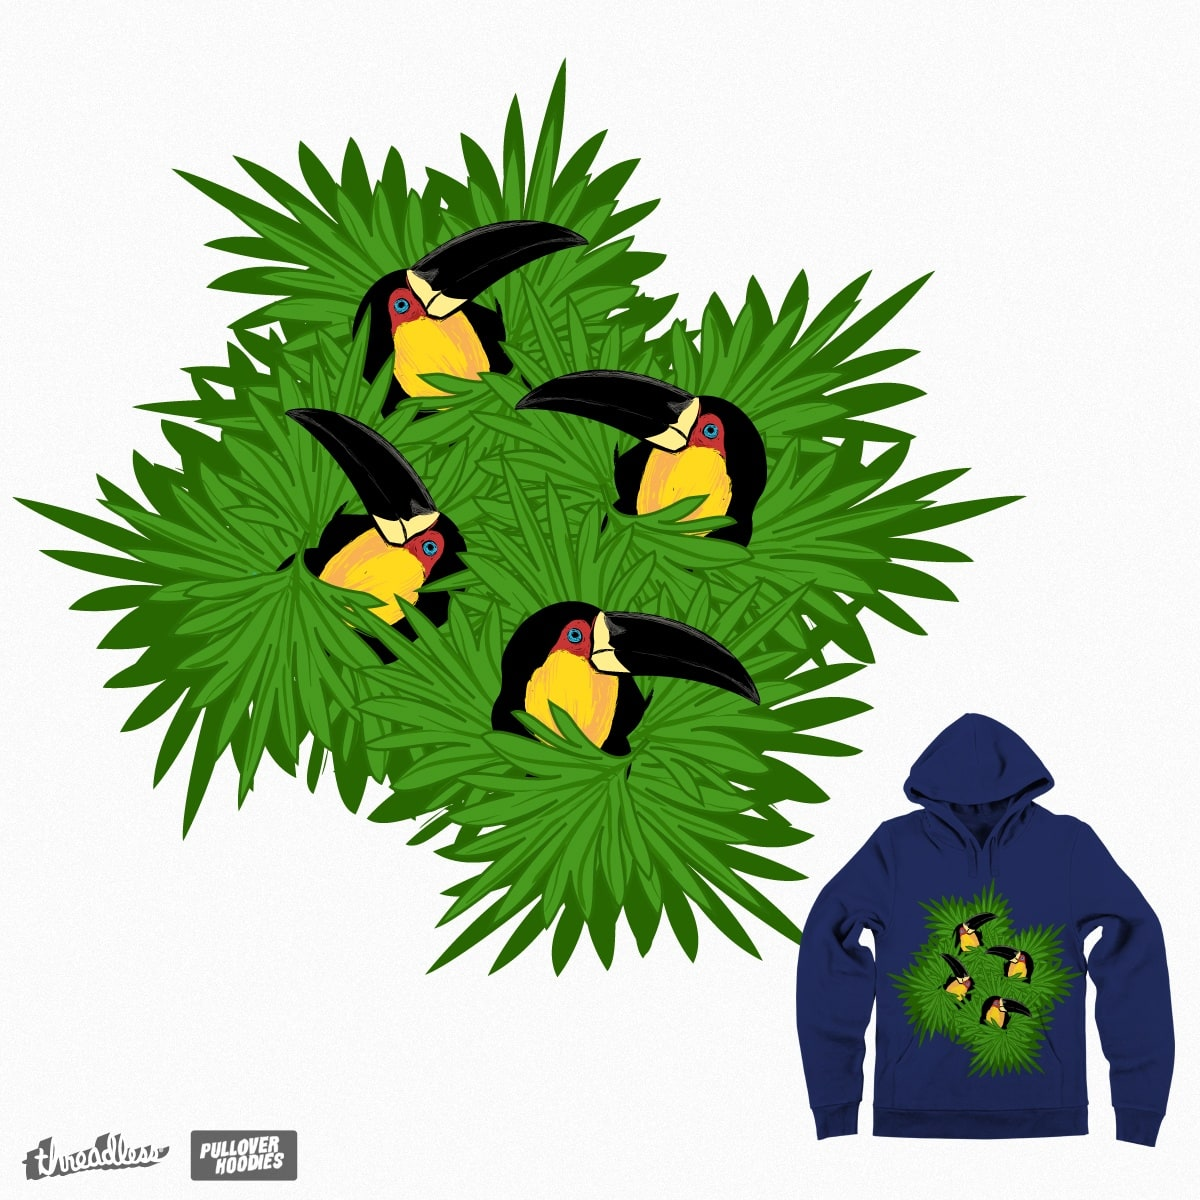 toucans in the green palms fronds by MELMARI on Threadless